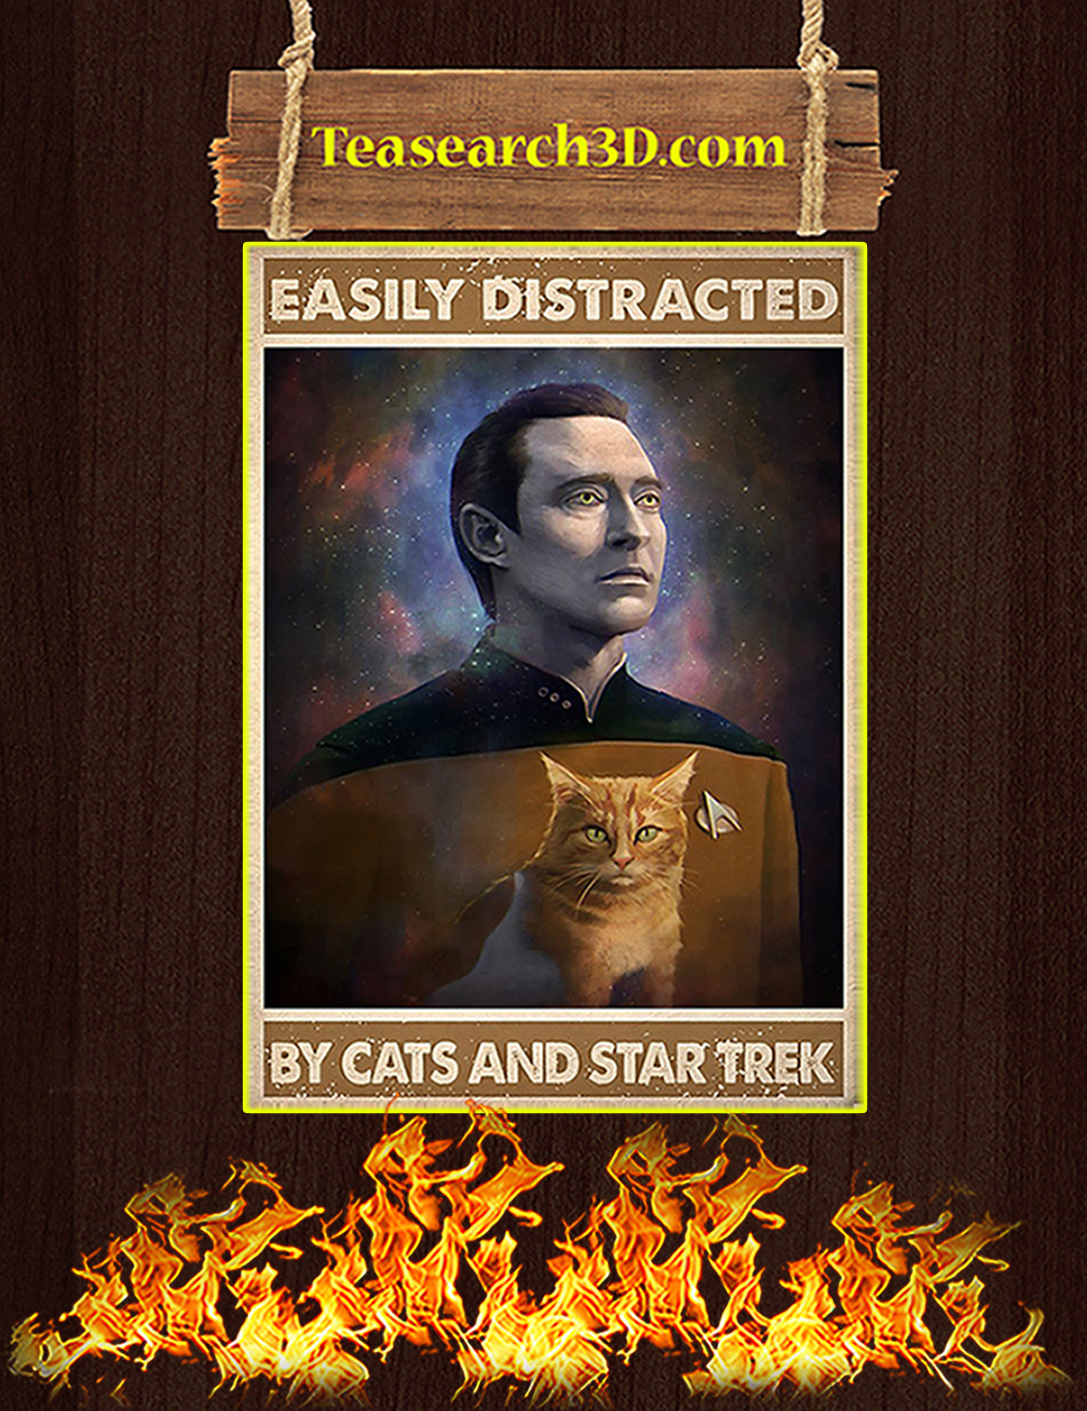 Easily distracted by cats and star trek poster A2